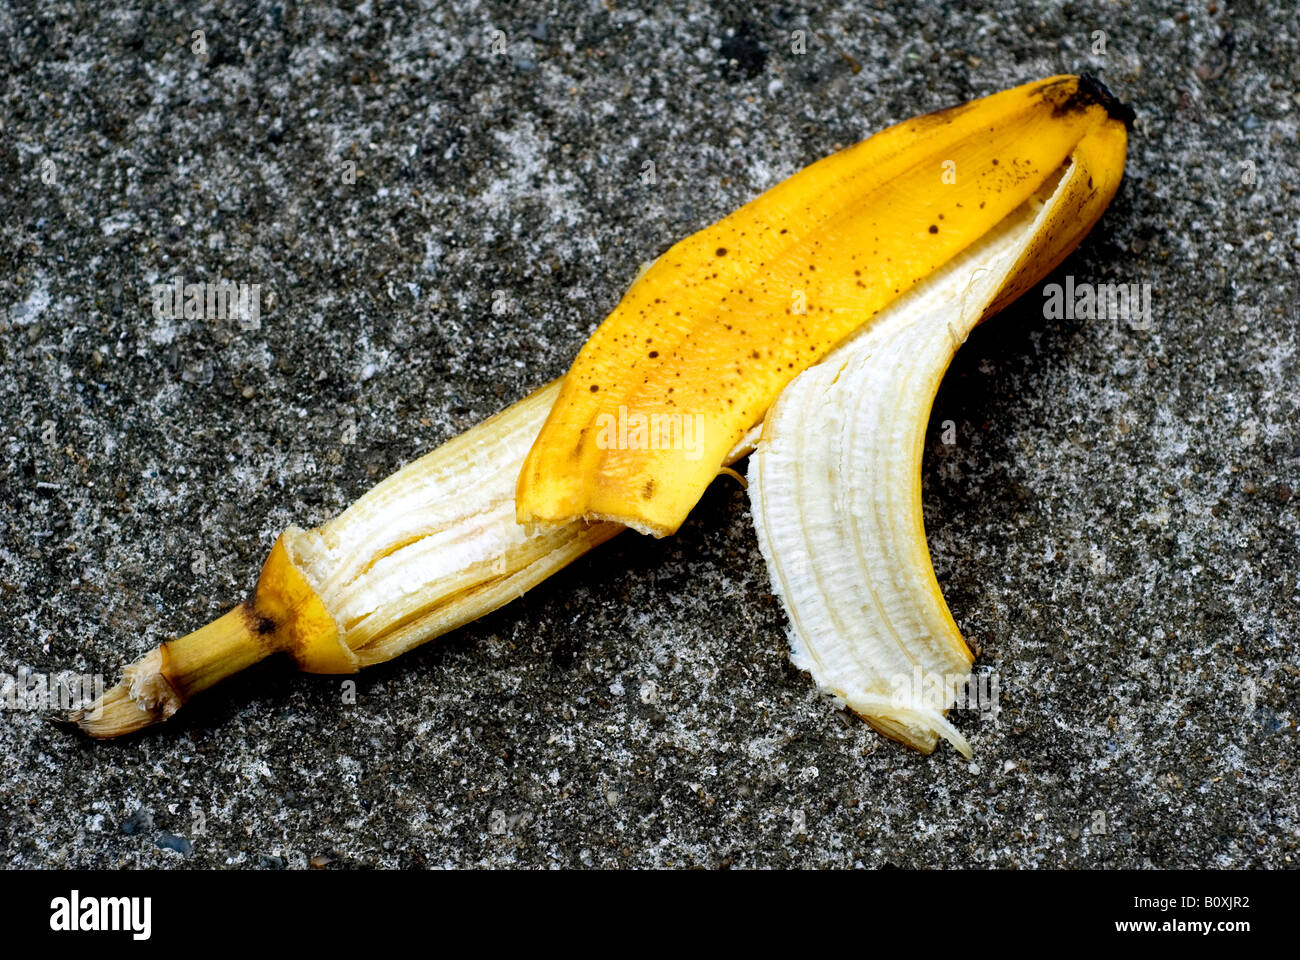 SHOT OF A BANANA SKIN ON A PAVEMENT OR SIDEWALK - Stock Image